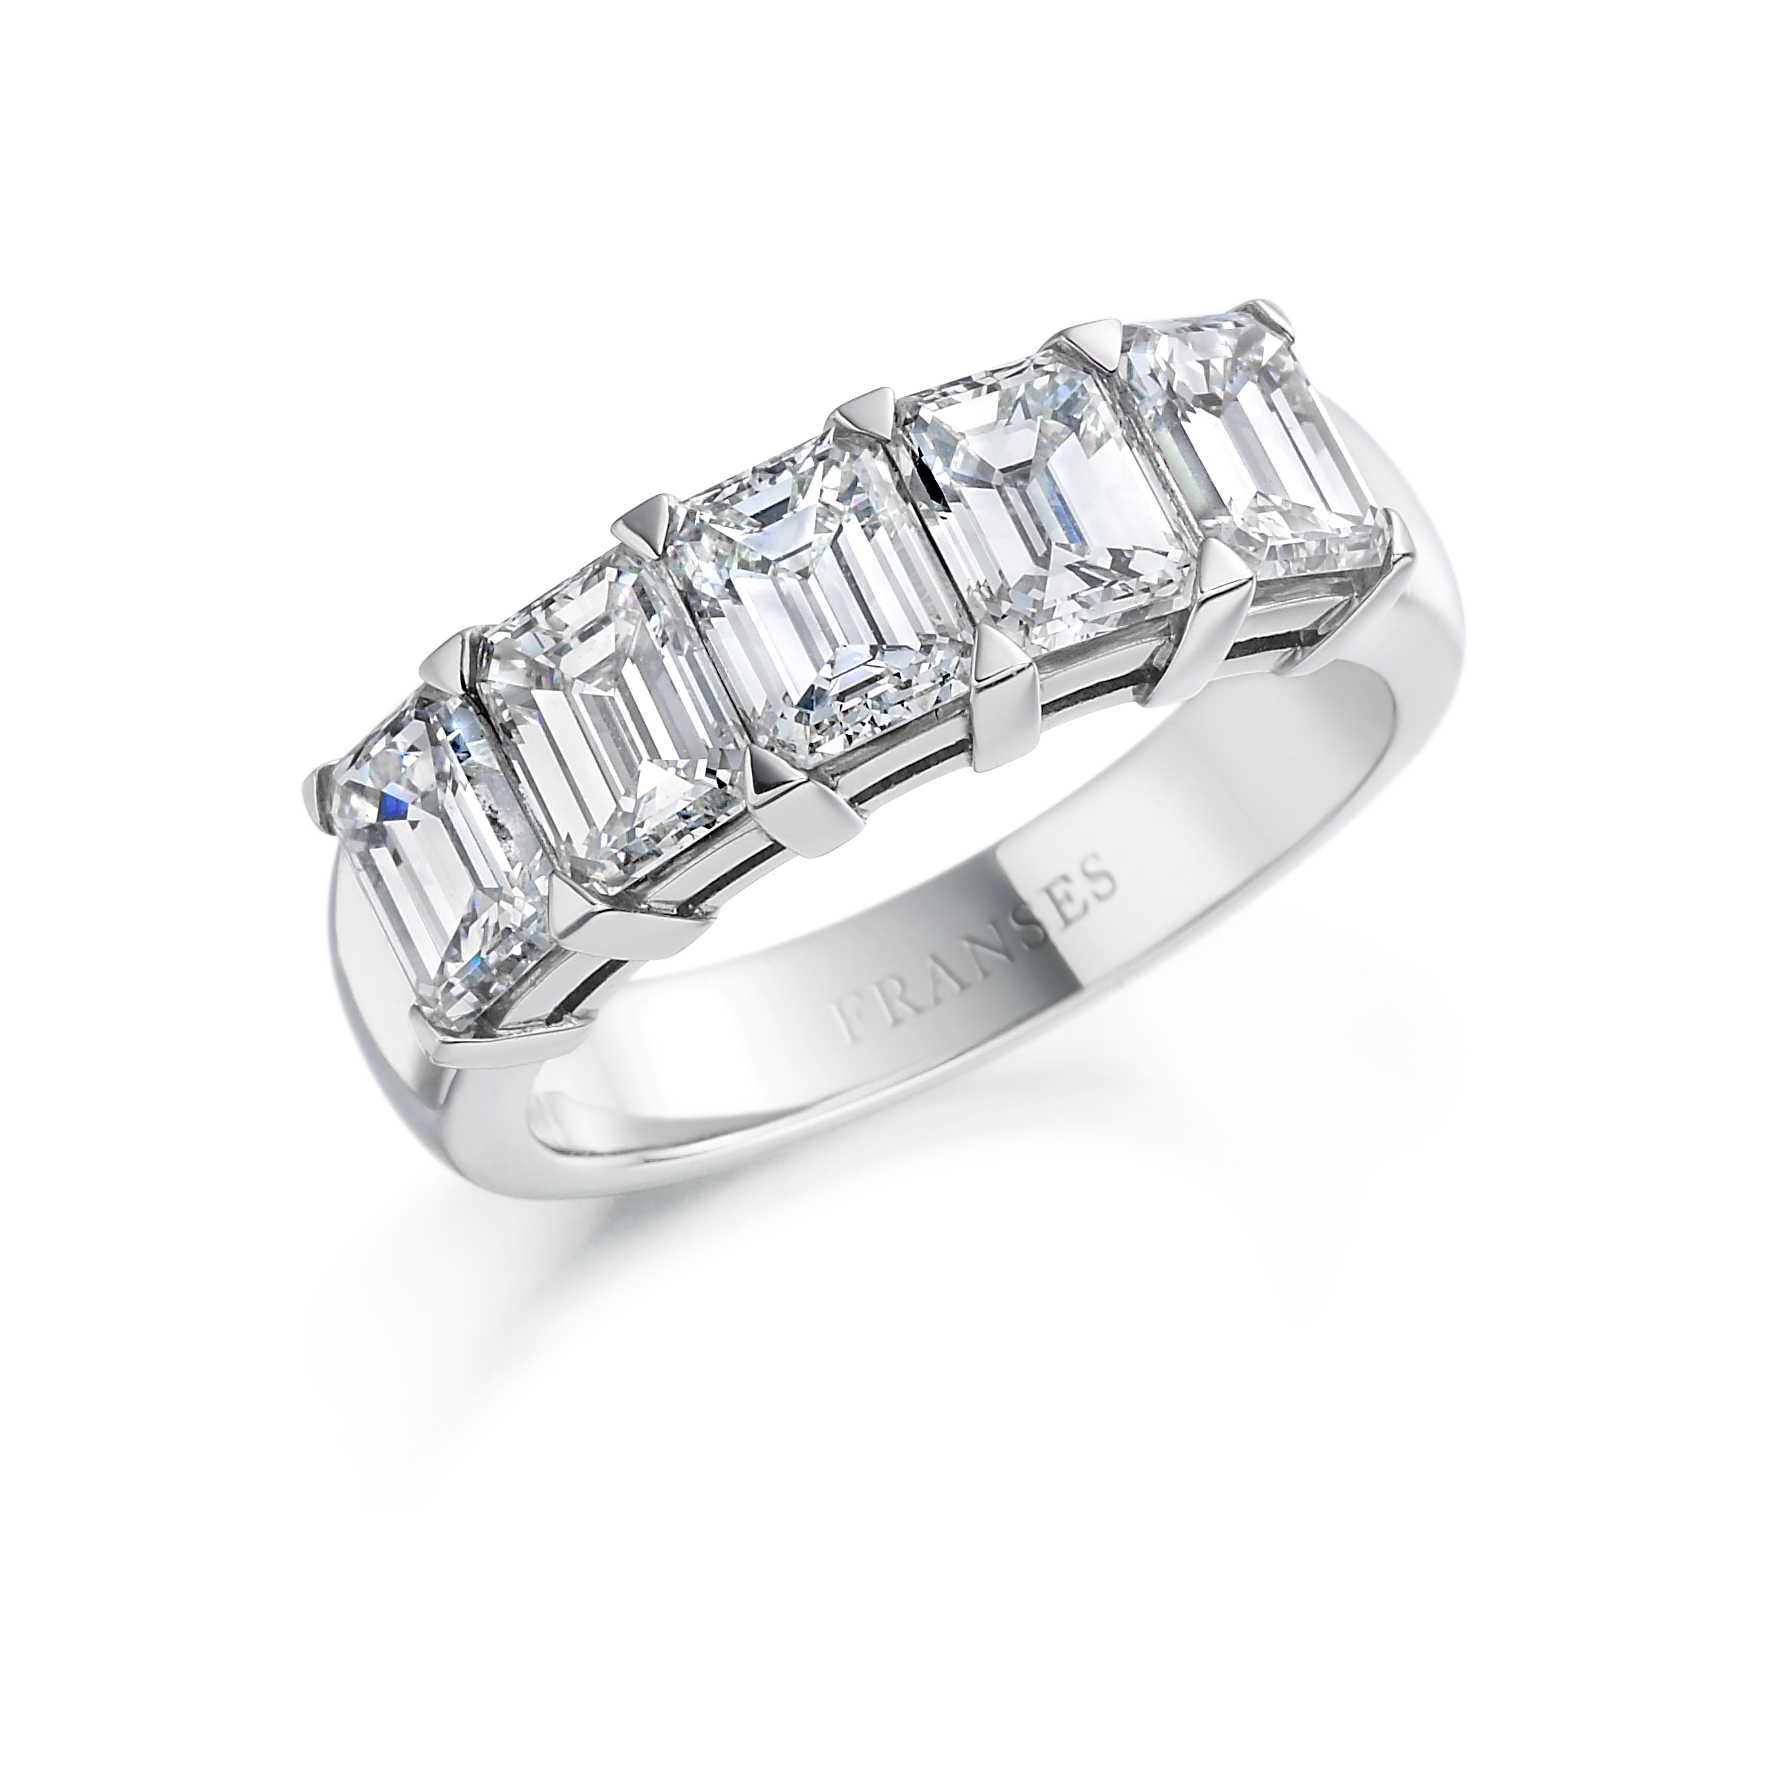 Emerald-cut diamond ring - 5 stone em cut